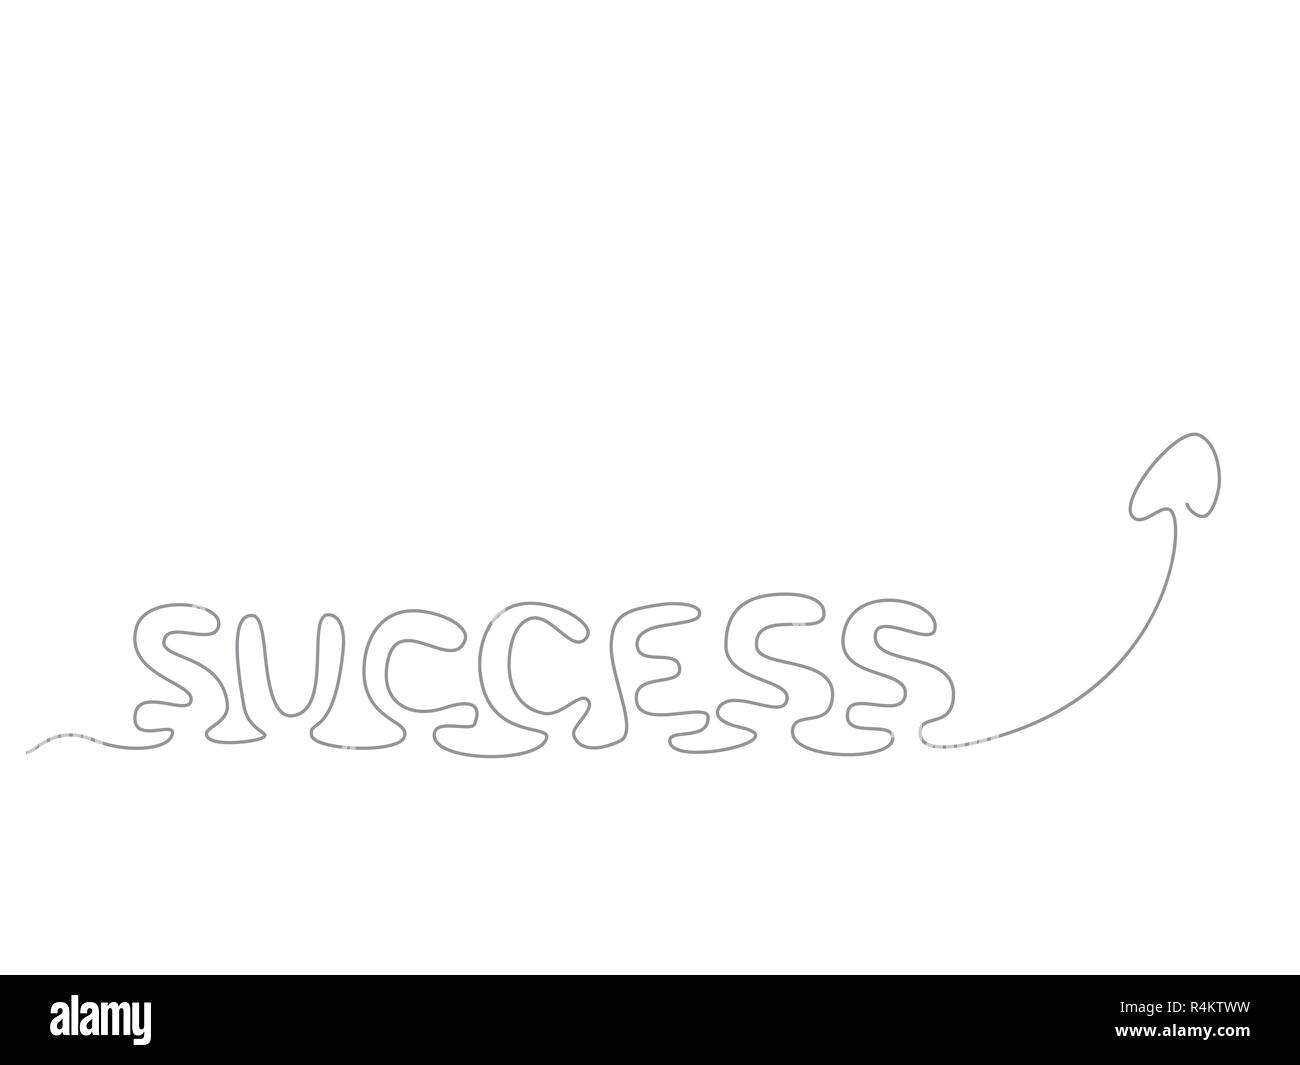 success - continuous line drawing - Stock Image